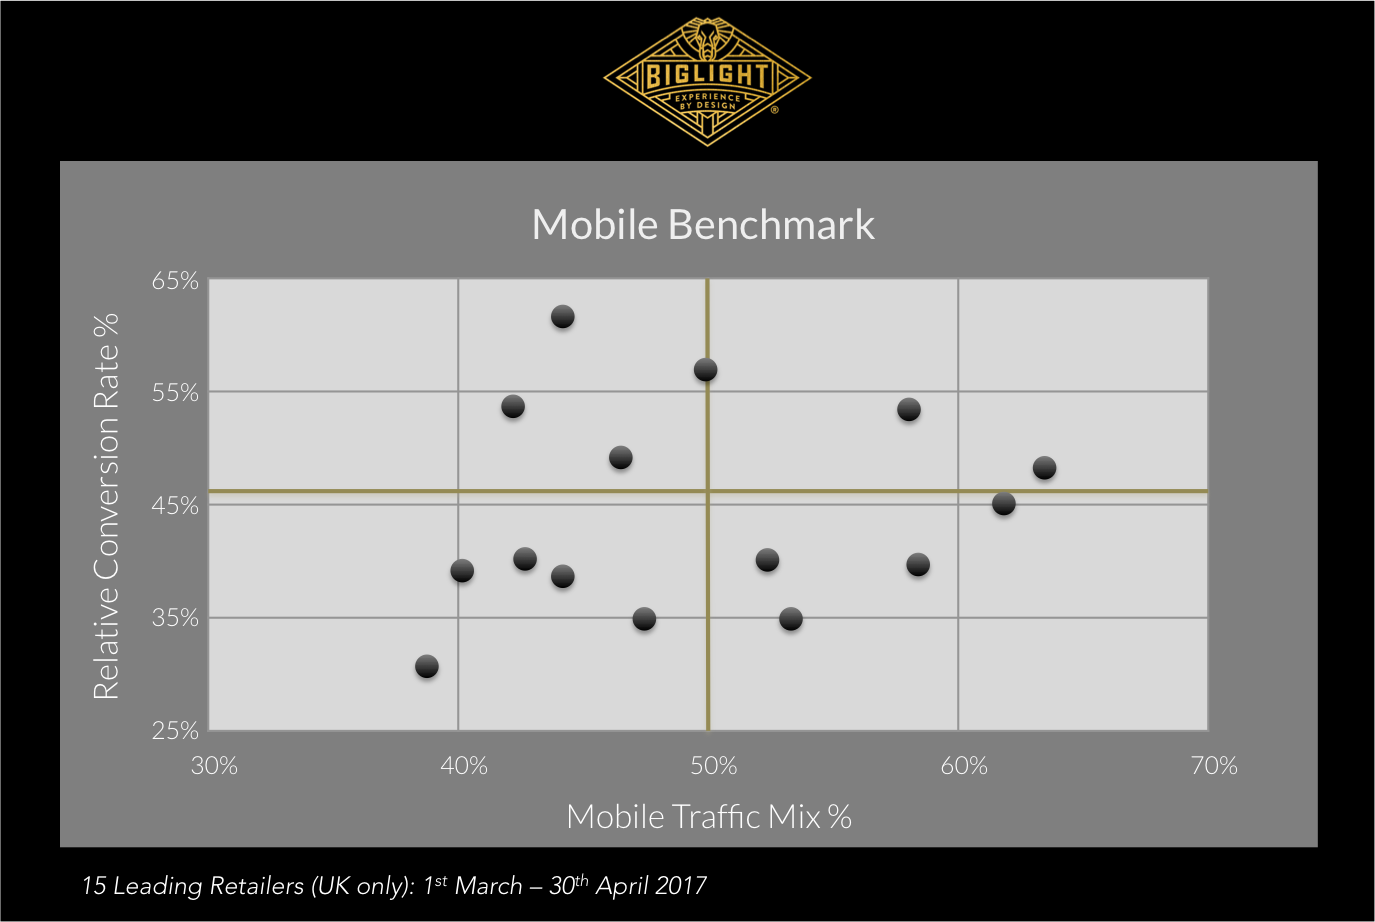 Mobile Benchmark